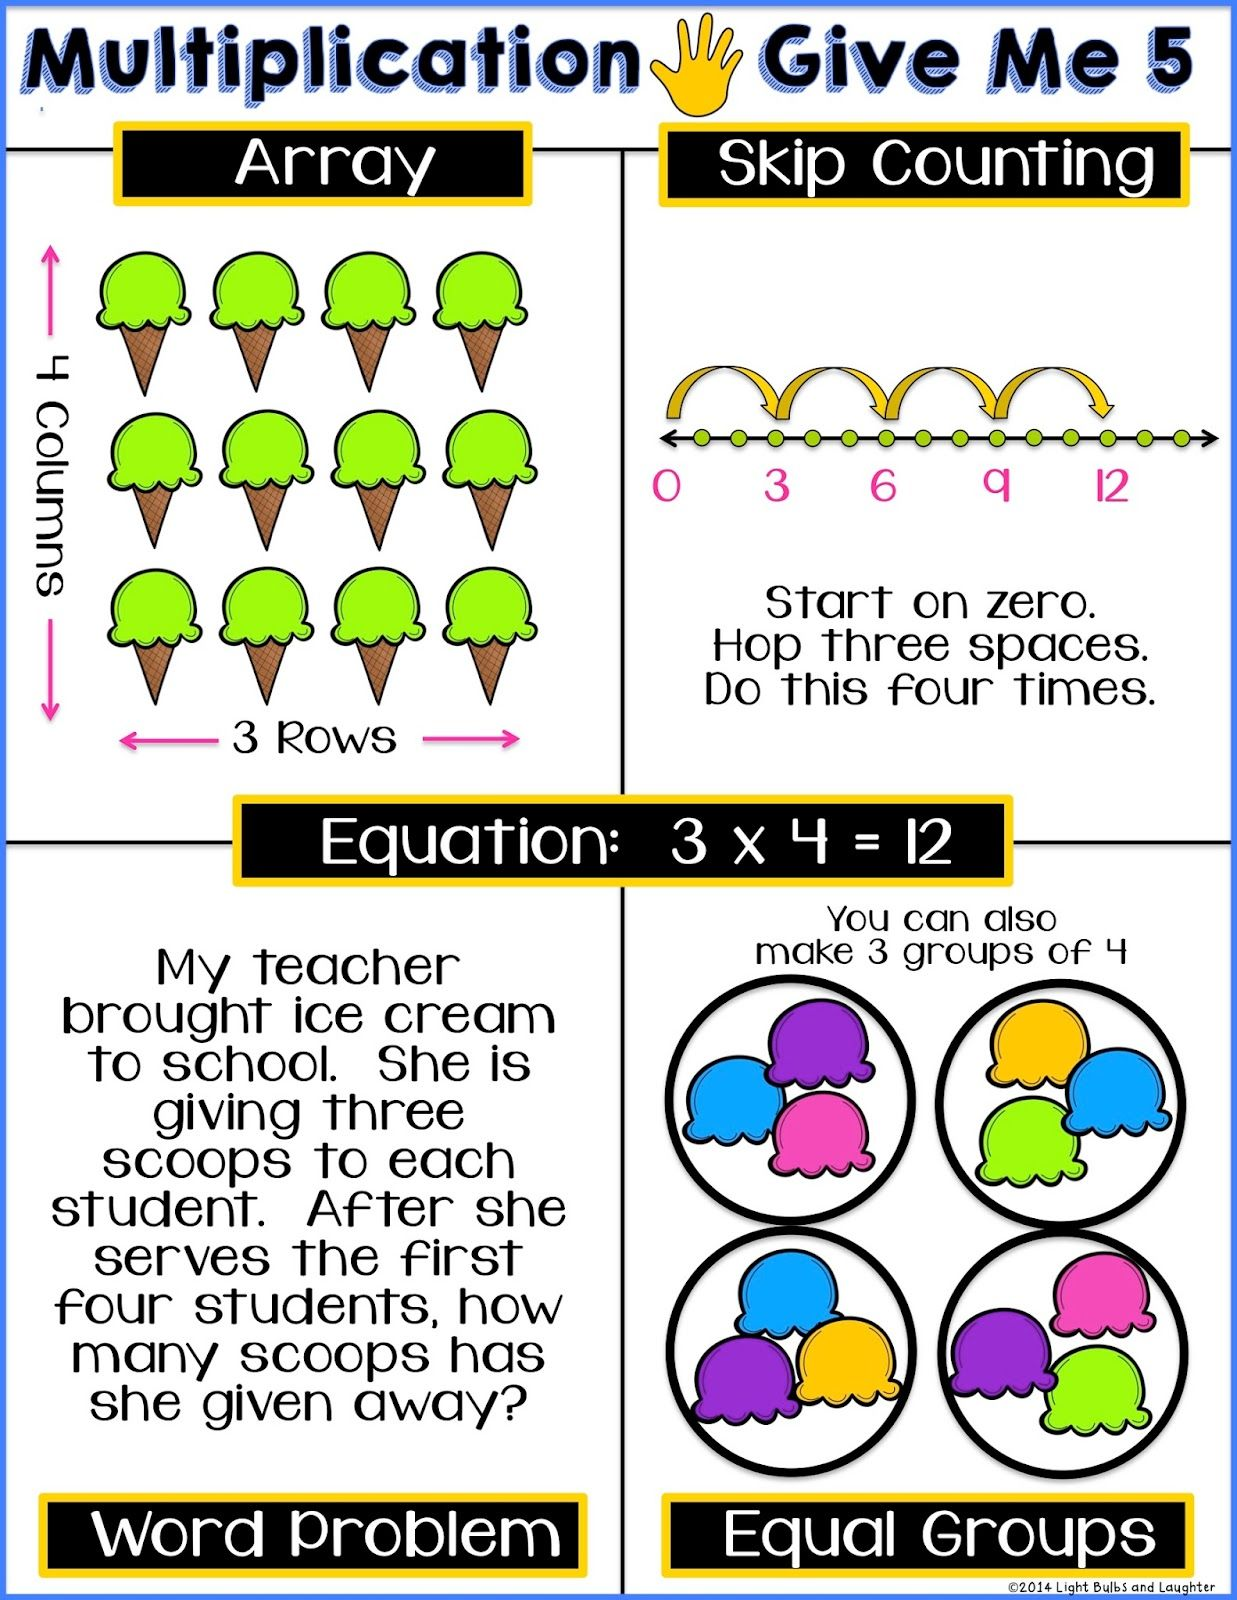 Multiplication Give Me 5 Poster and Worksheet FREE Students – Multiplication Array Worksheet